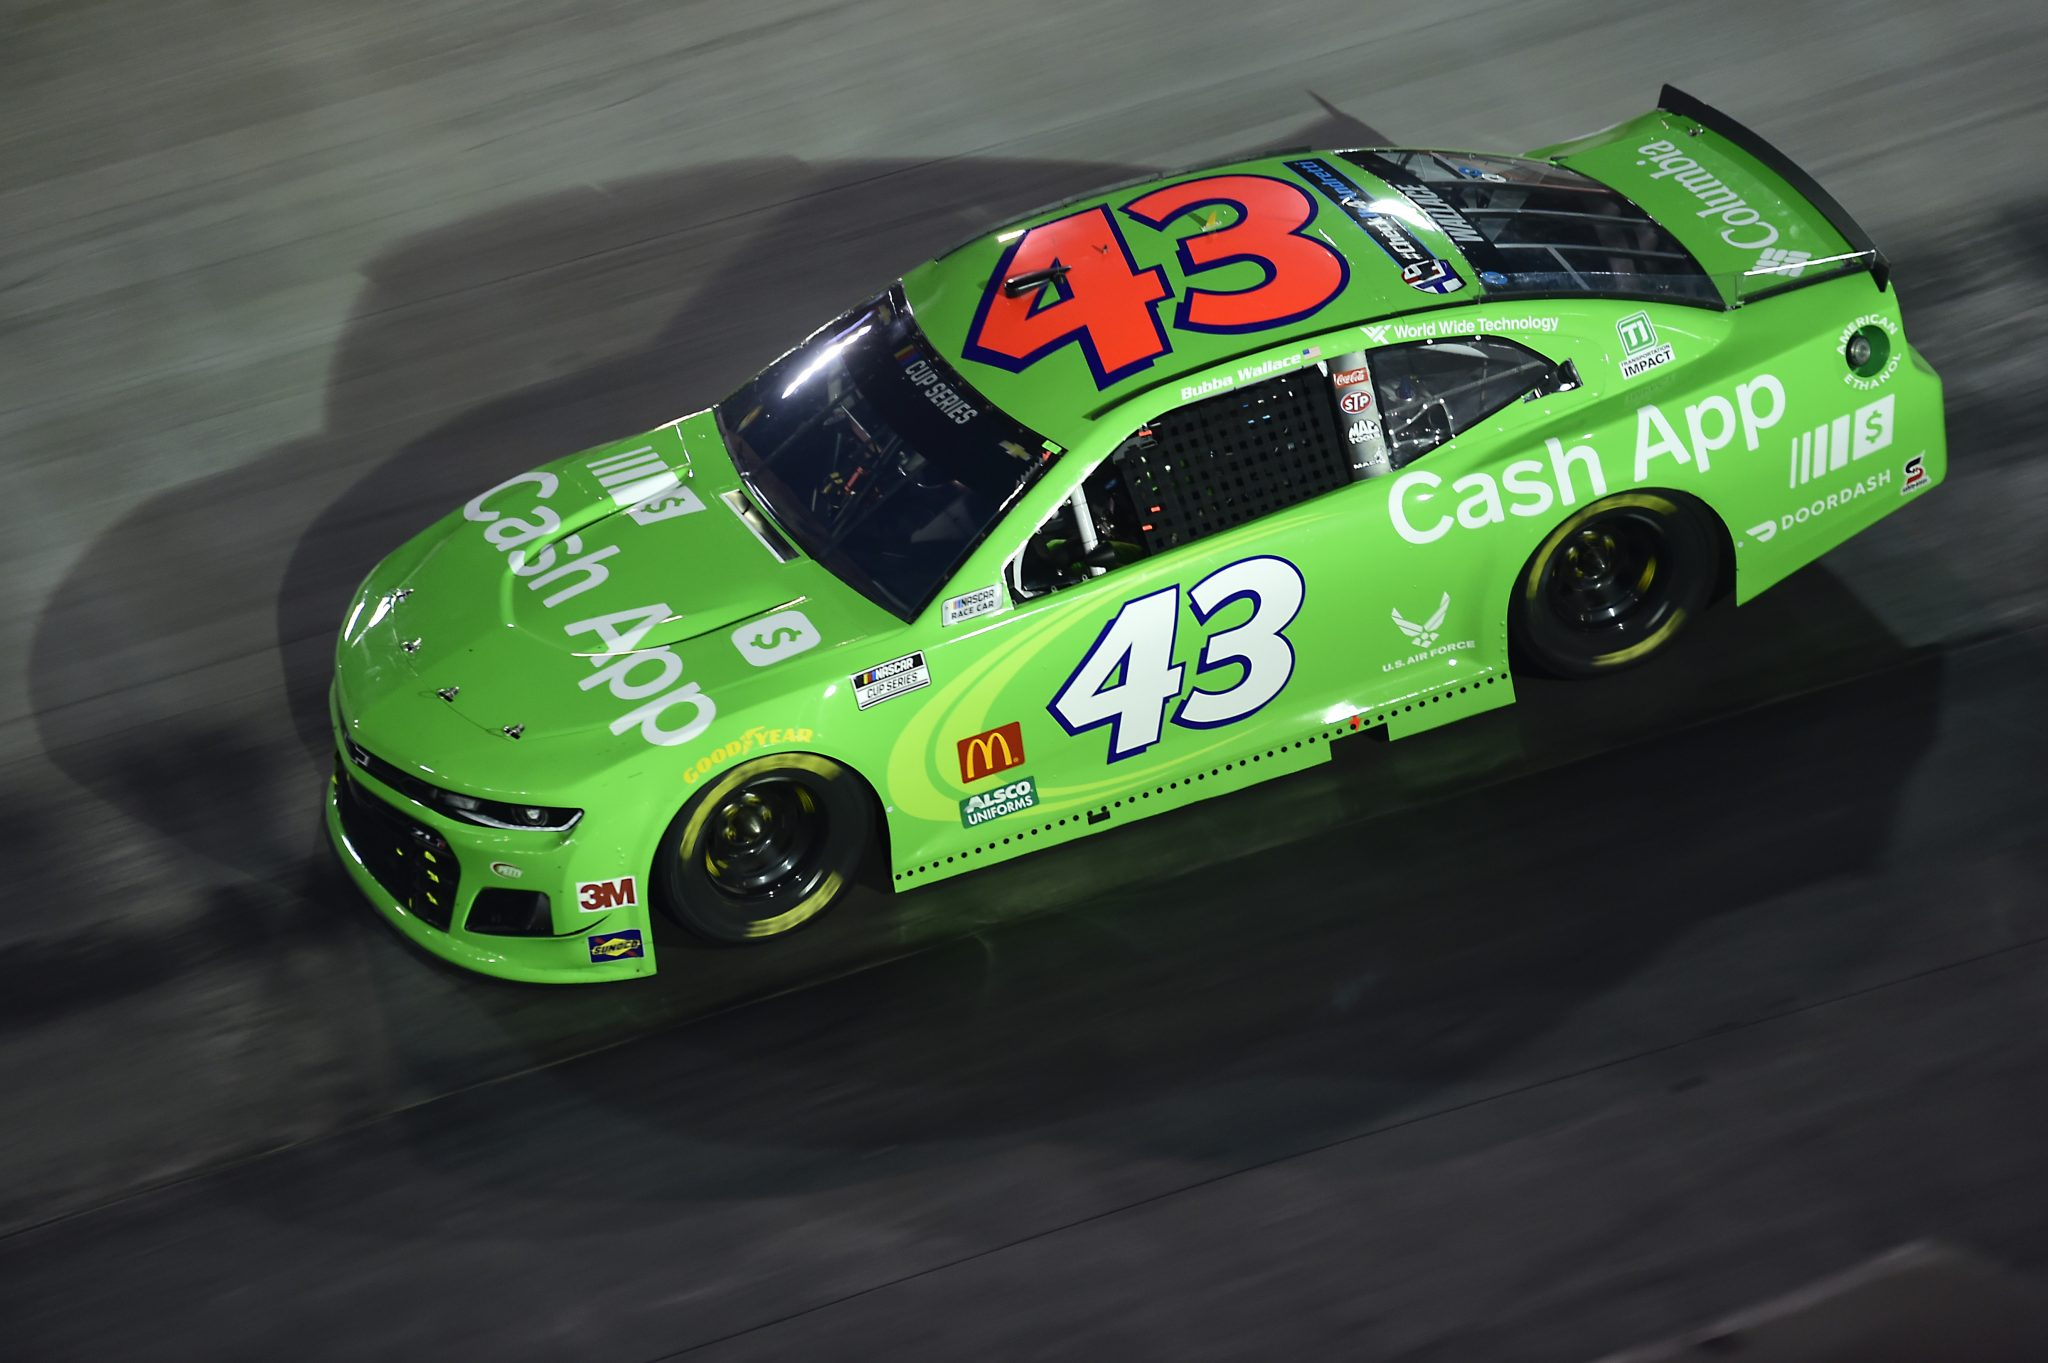 BRISTOL, TENNESSEE - SEPTEMBER 19: Bubba Wallace, driver of the #43 Cash App Chevrolet, drives during the NASCAR Cup Series Bass Pro Shops Night Race at Bristol Motor Speedway on September 19, 2020 in Bristol, Tennessee. (Photo by Jared C. Tilton/Getty Images) | Getty Images